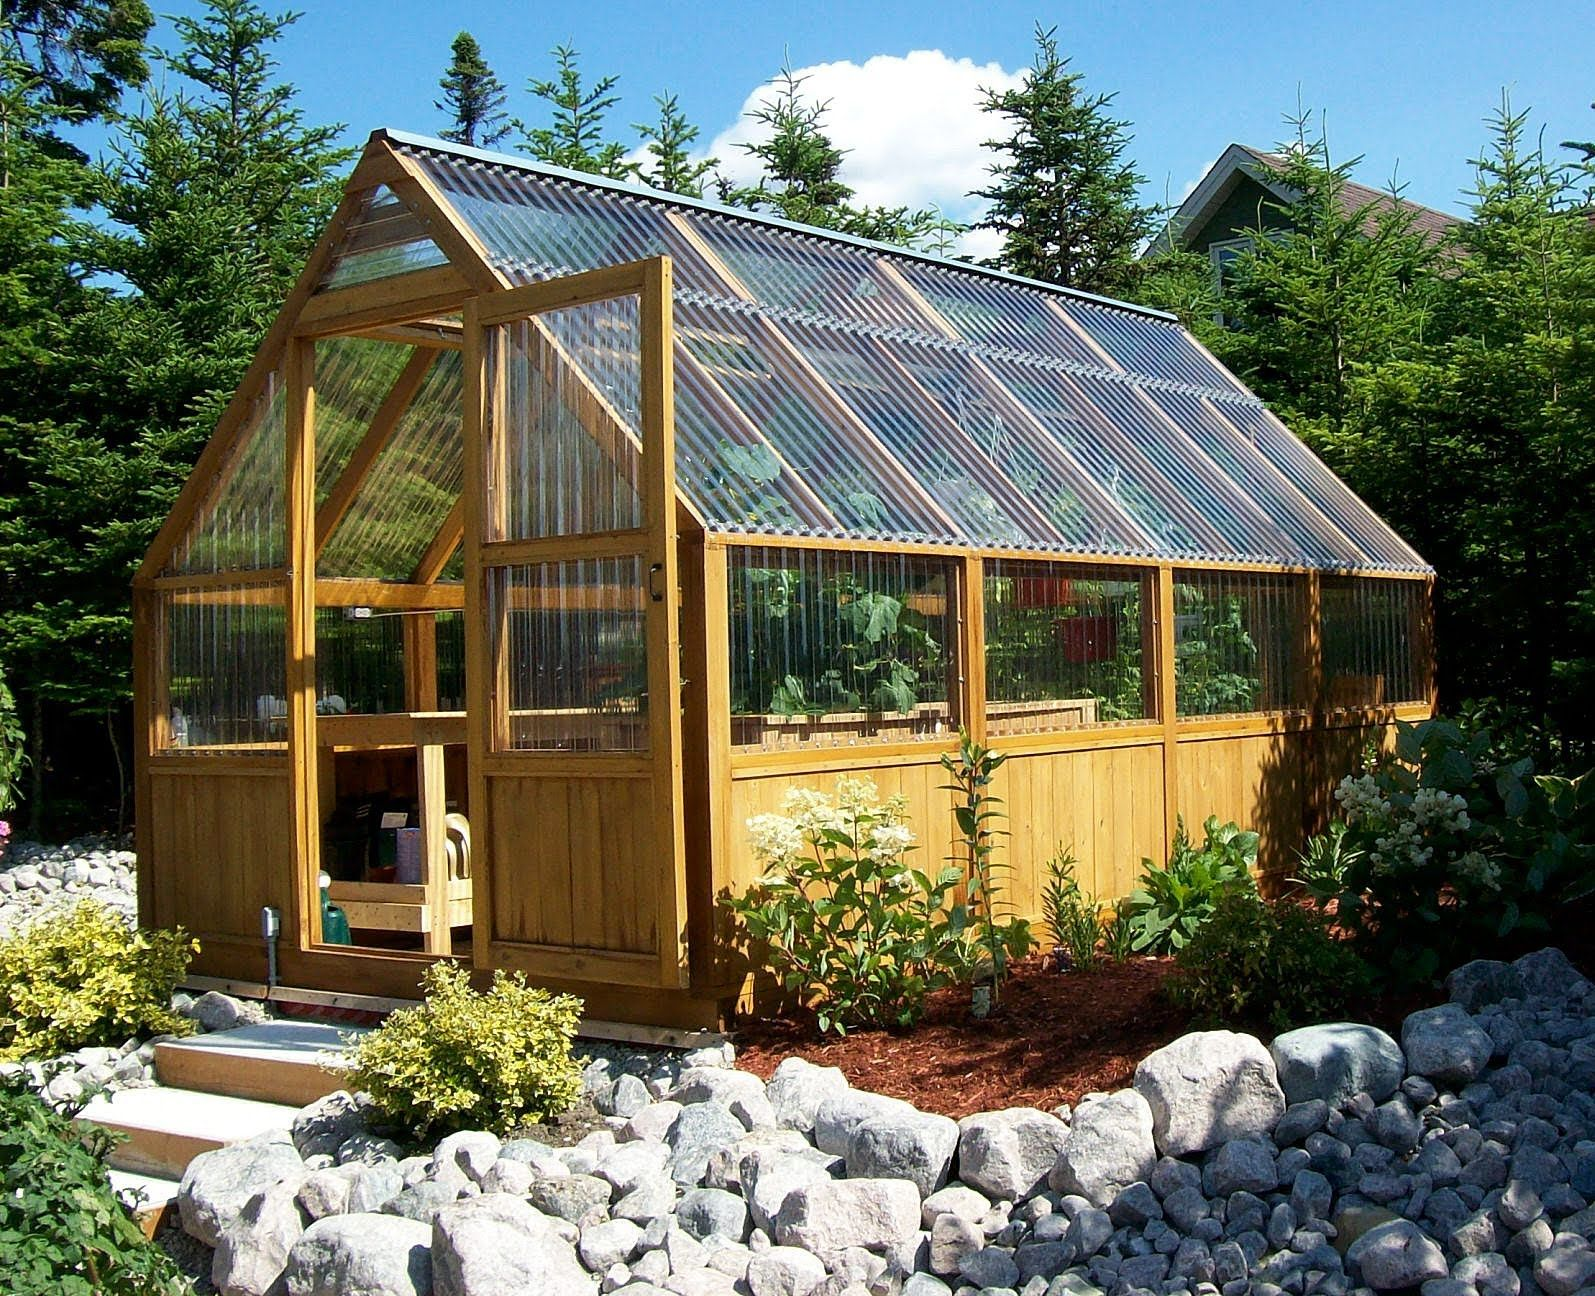 Captivating Greenhouse Plans: How To Build A DIY Hobby Greenhouse   Detailed Step By.